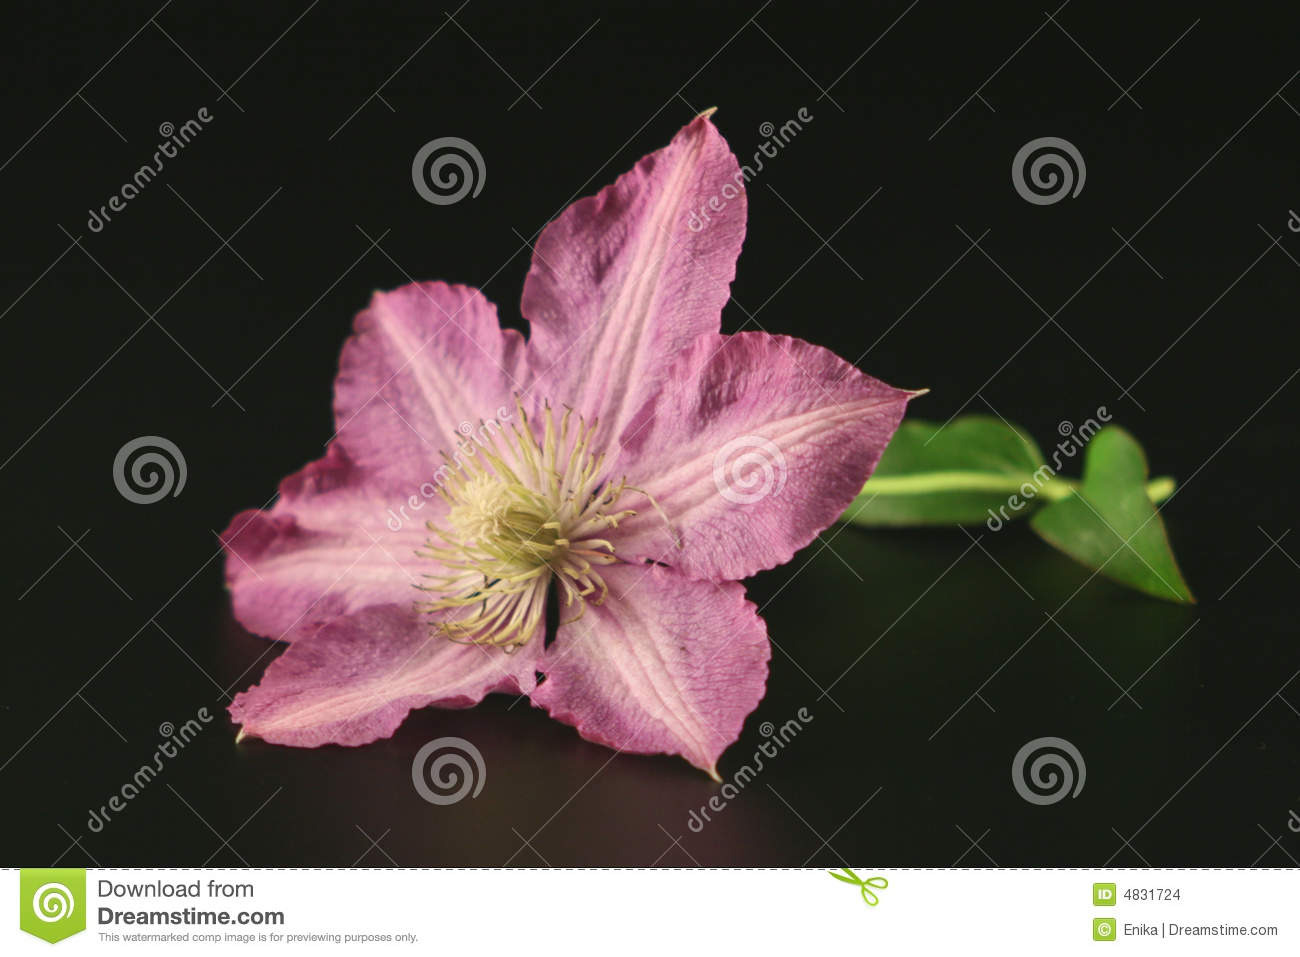 Flower of clematis